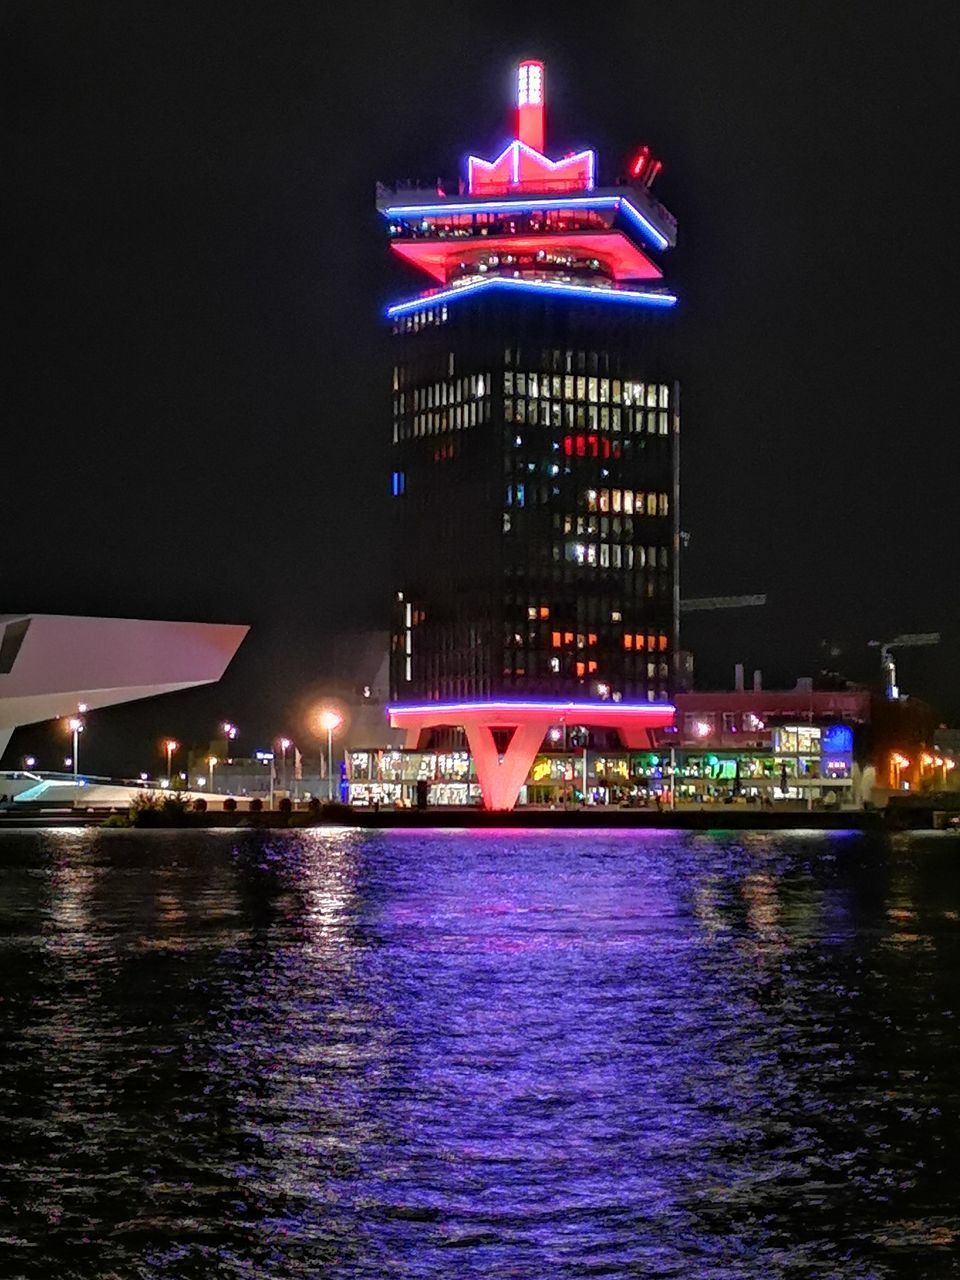 ILLUMINATED BUILDING BY RIVER